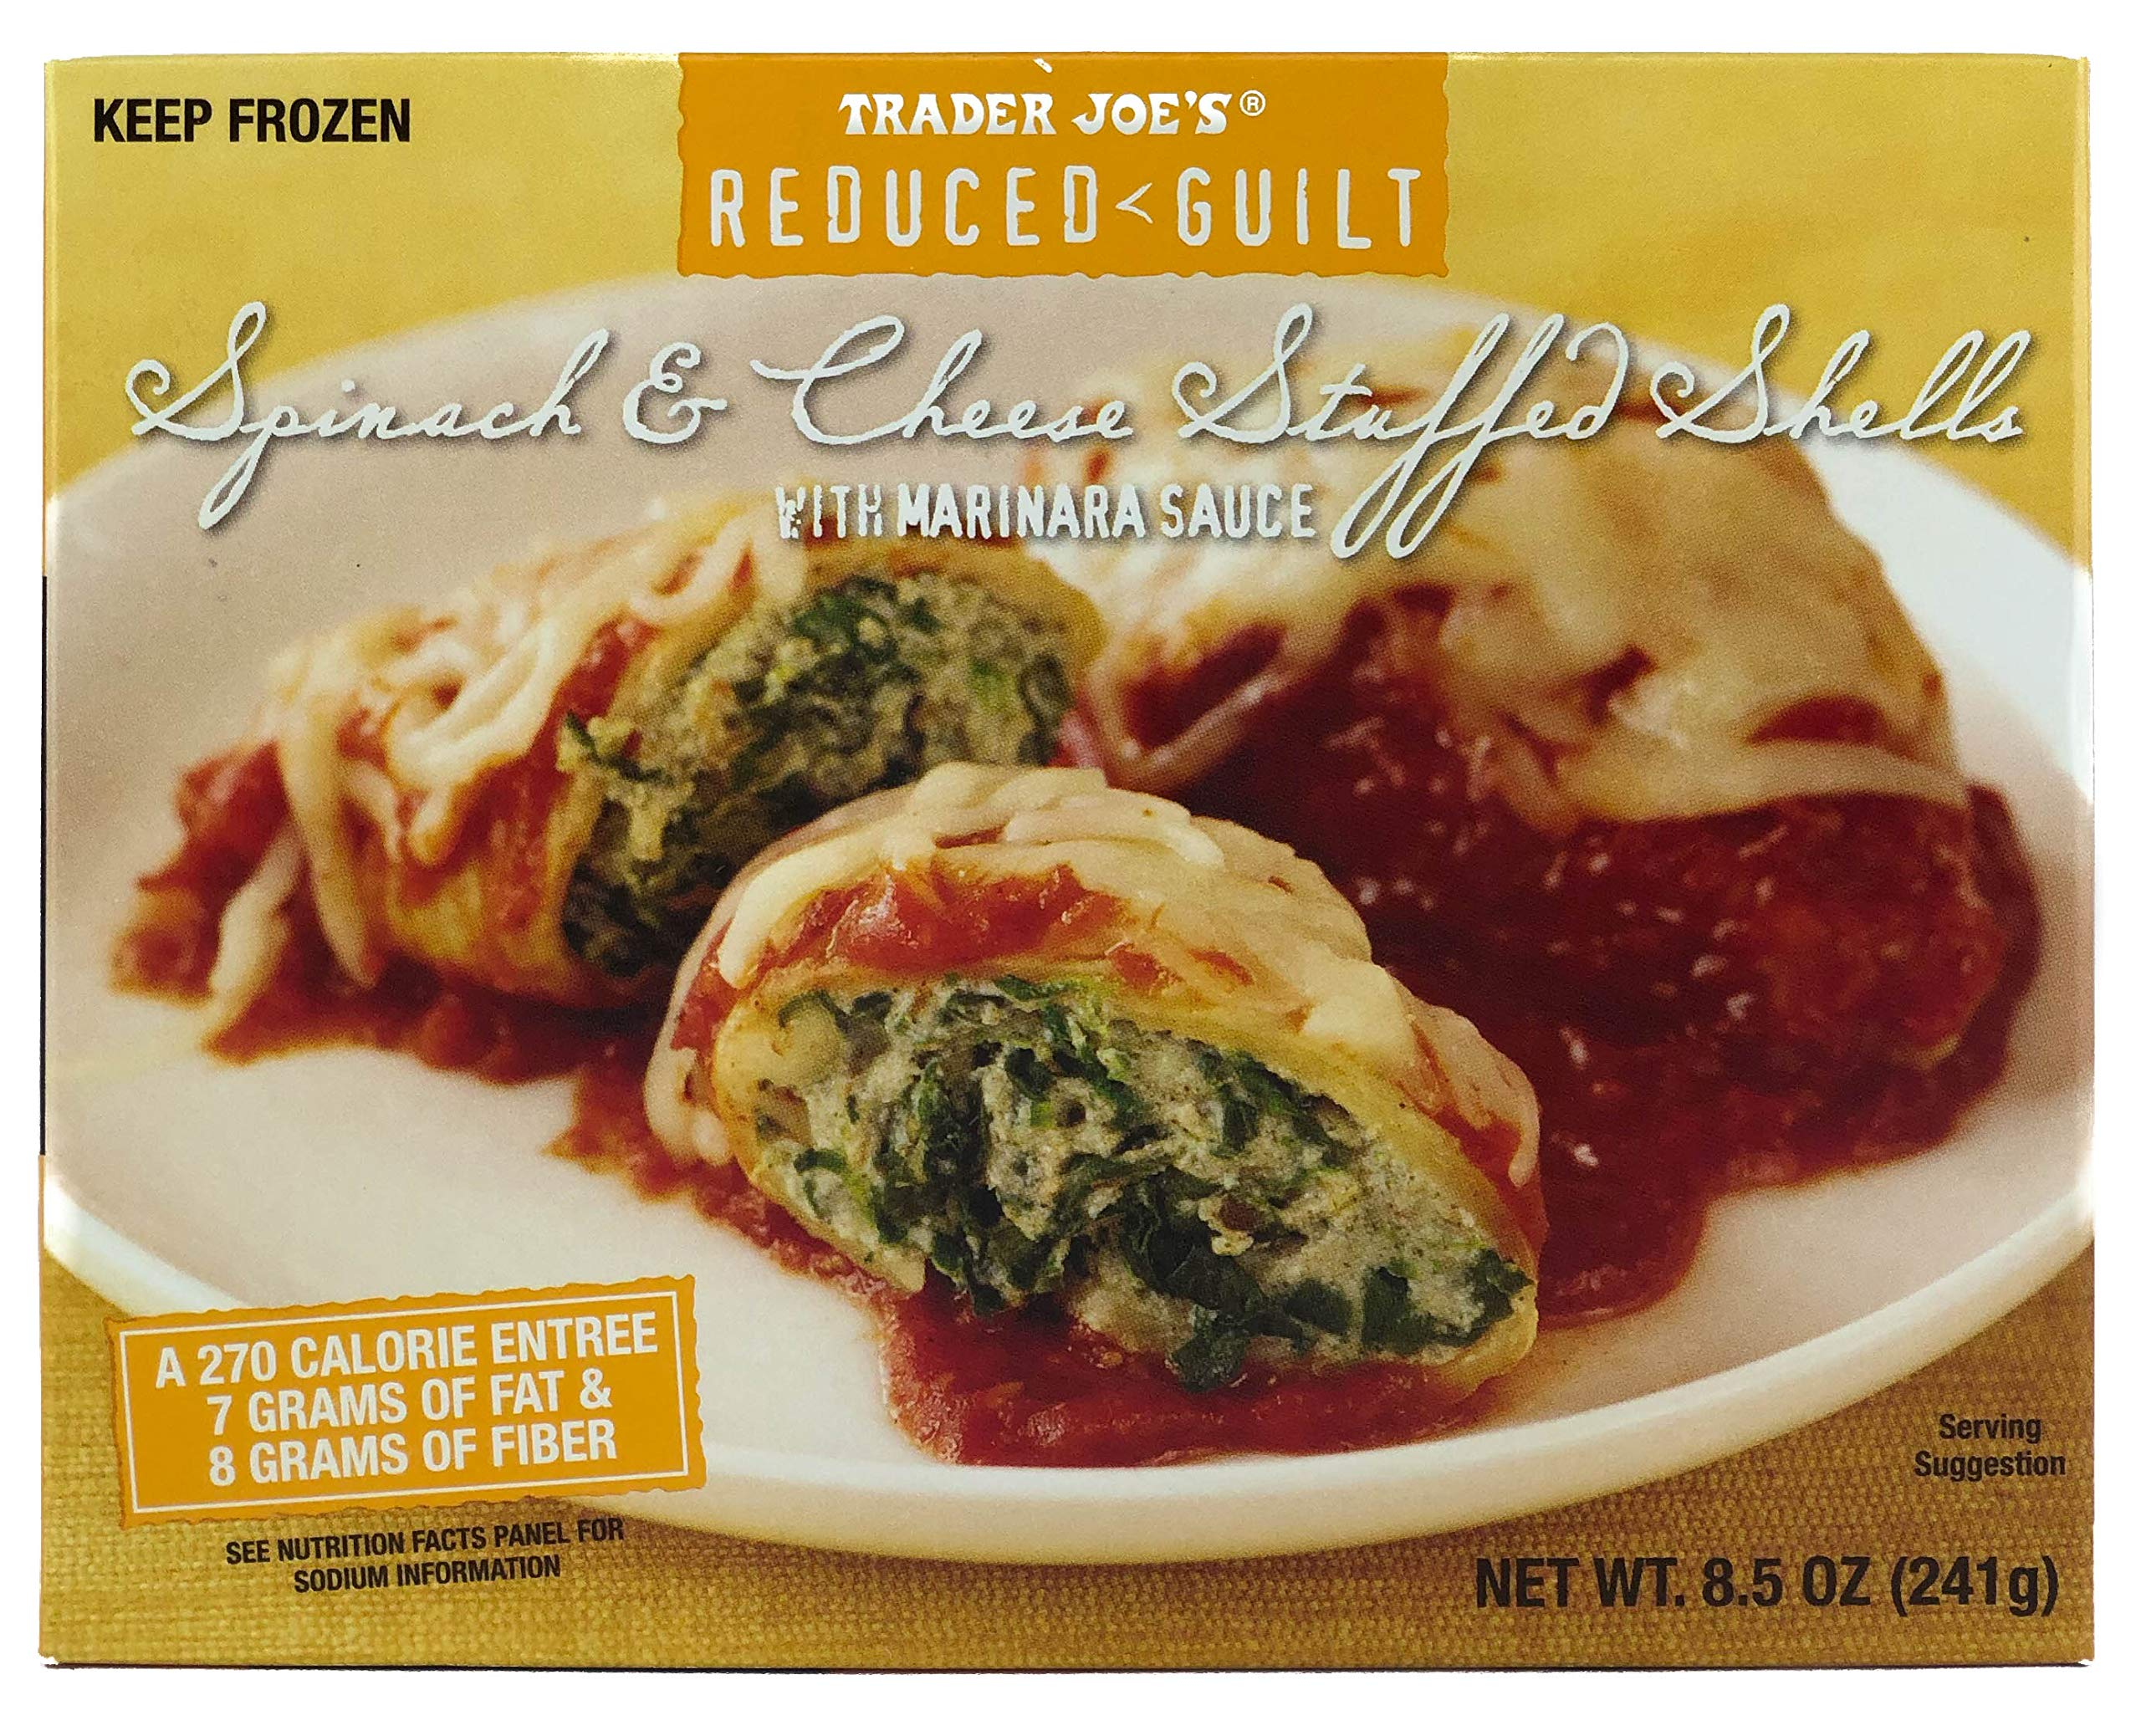 Trader Joe's Reduced Guilt Spinach & Cheese Stuffed Shells with Marinara Sauce (6 Pack)